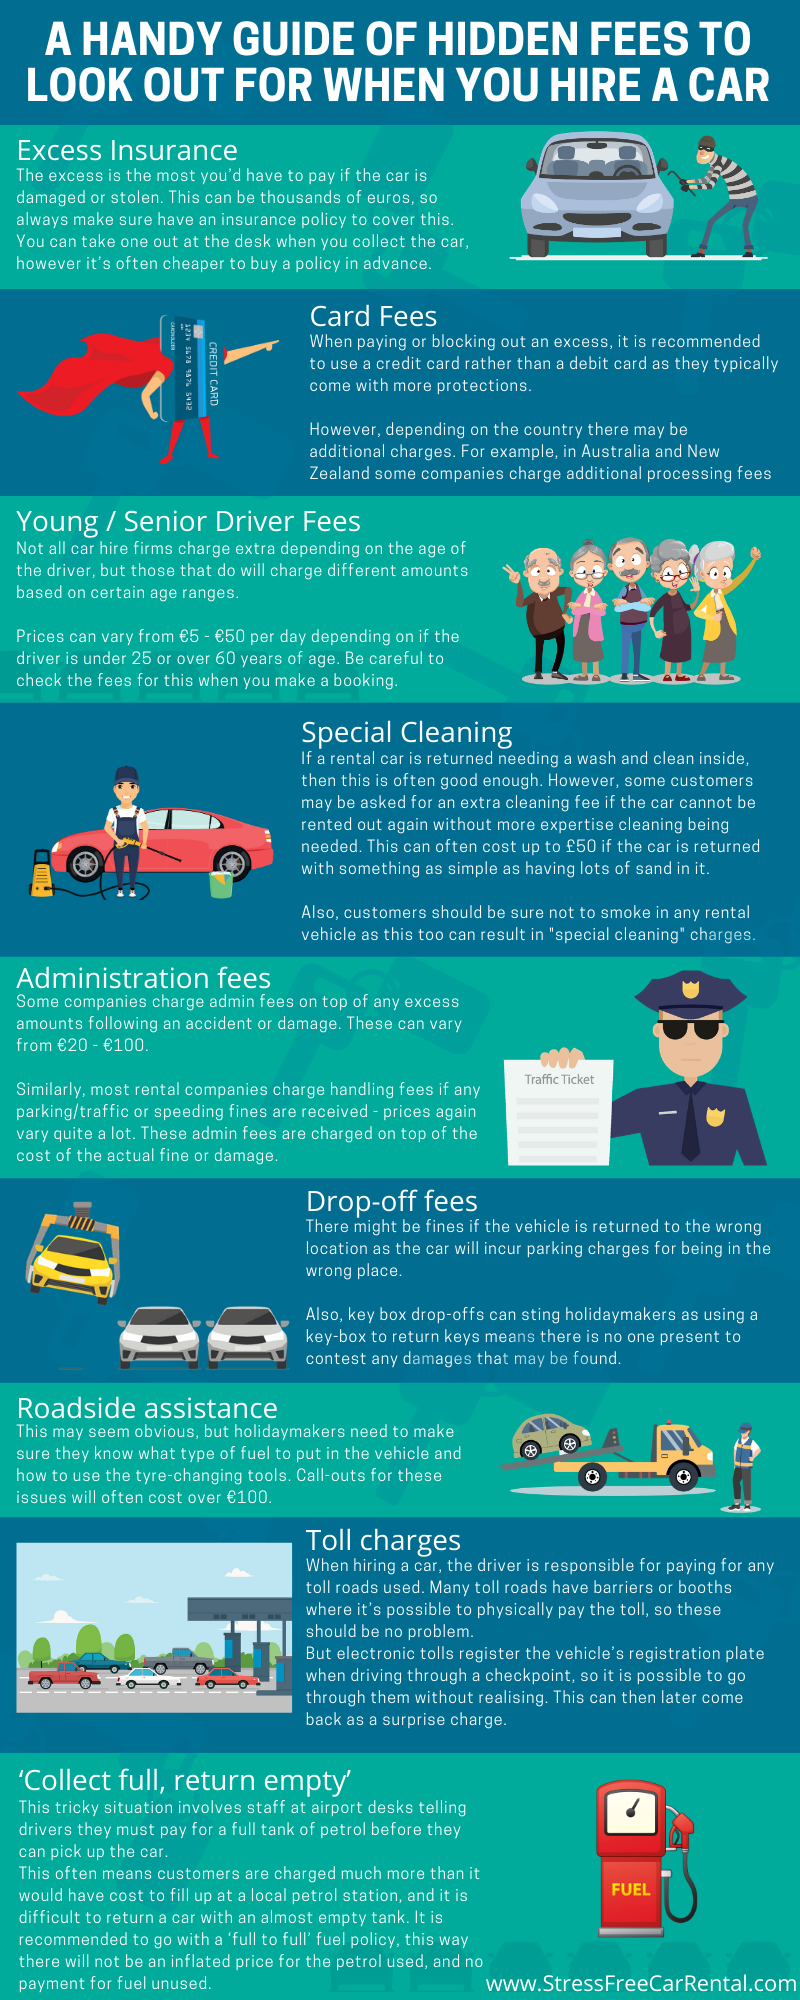 Guide to Avoid Hidden Fees When Hiring a Car #Infographic